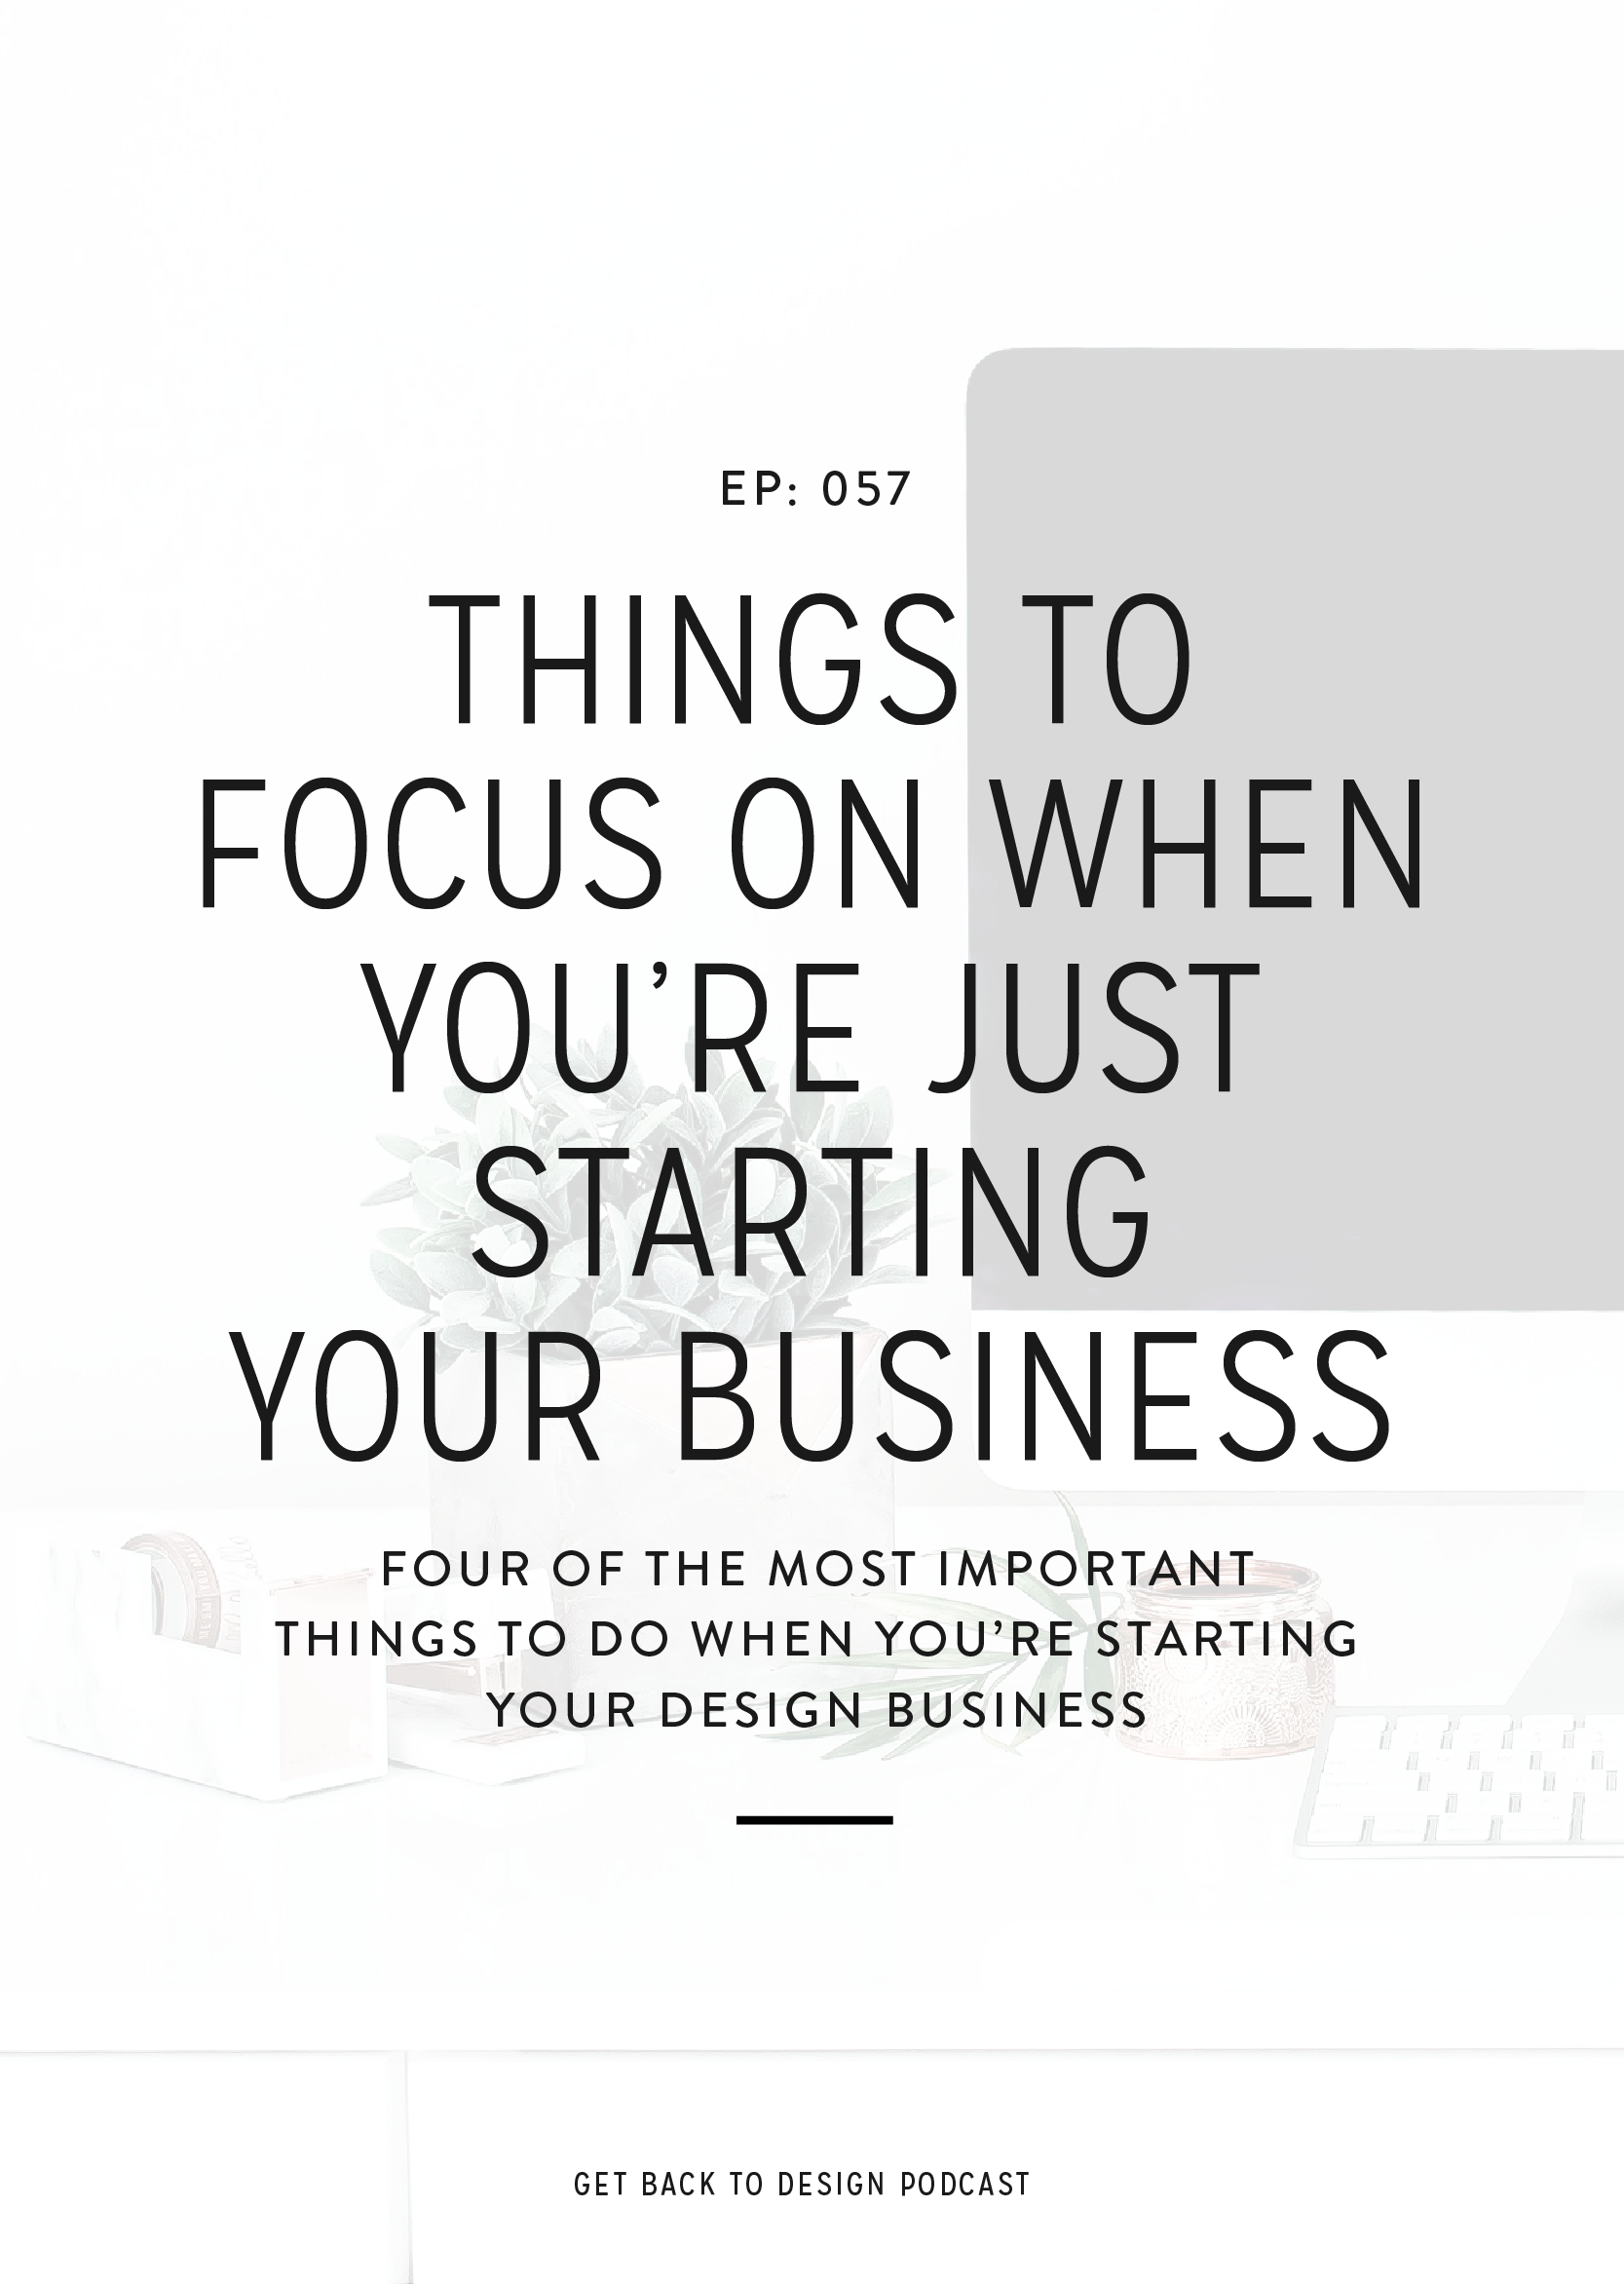 In this episode, we're sharing 4 things that you should make a priority whether you're just getting started now or are in your first couple of years of business to help establish your business and start booking clients.